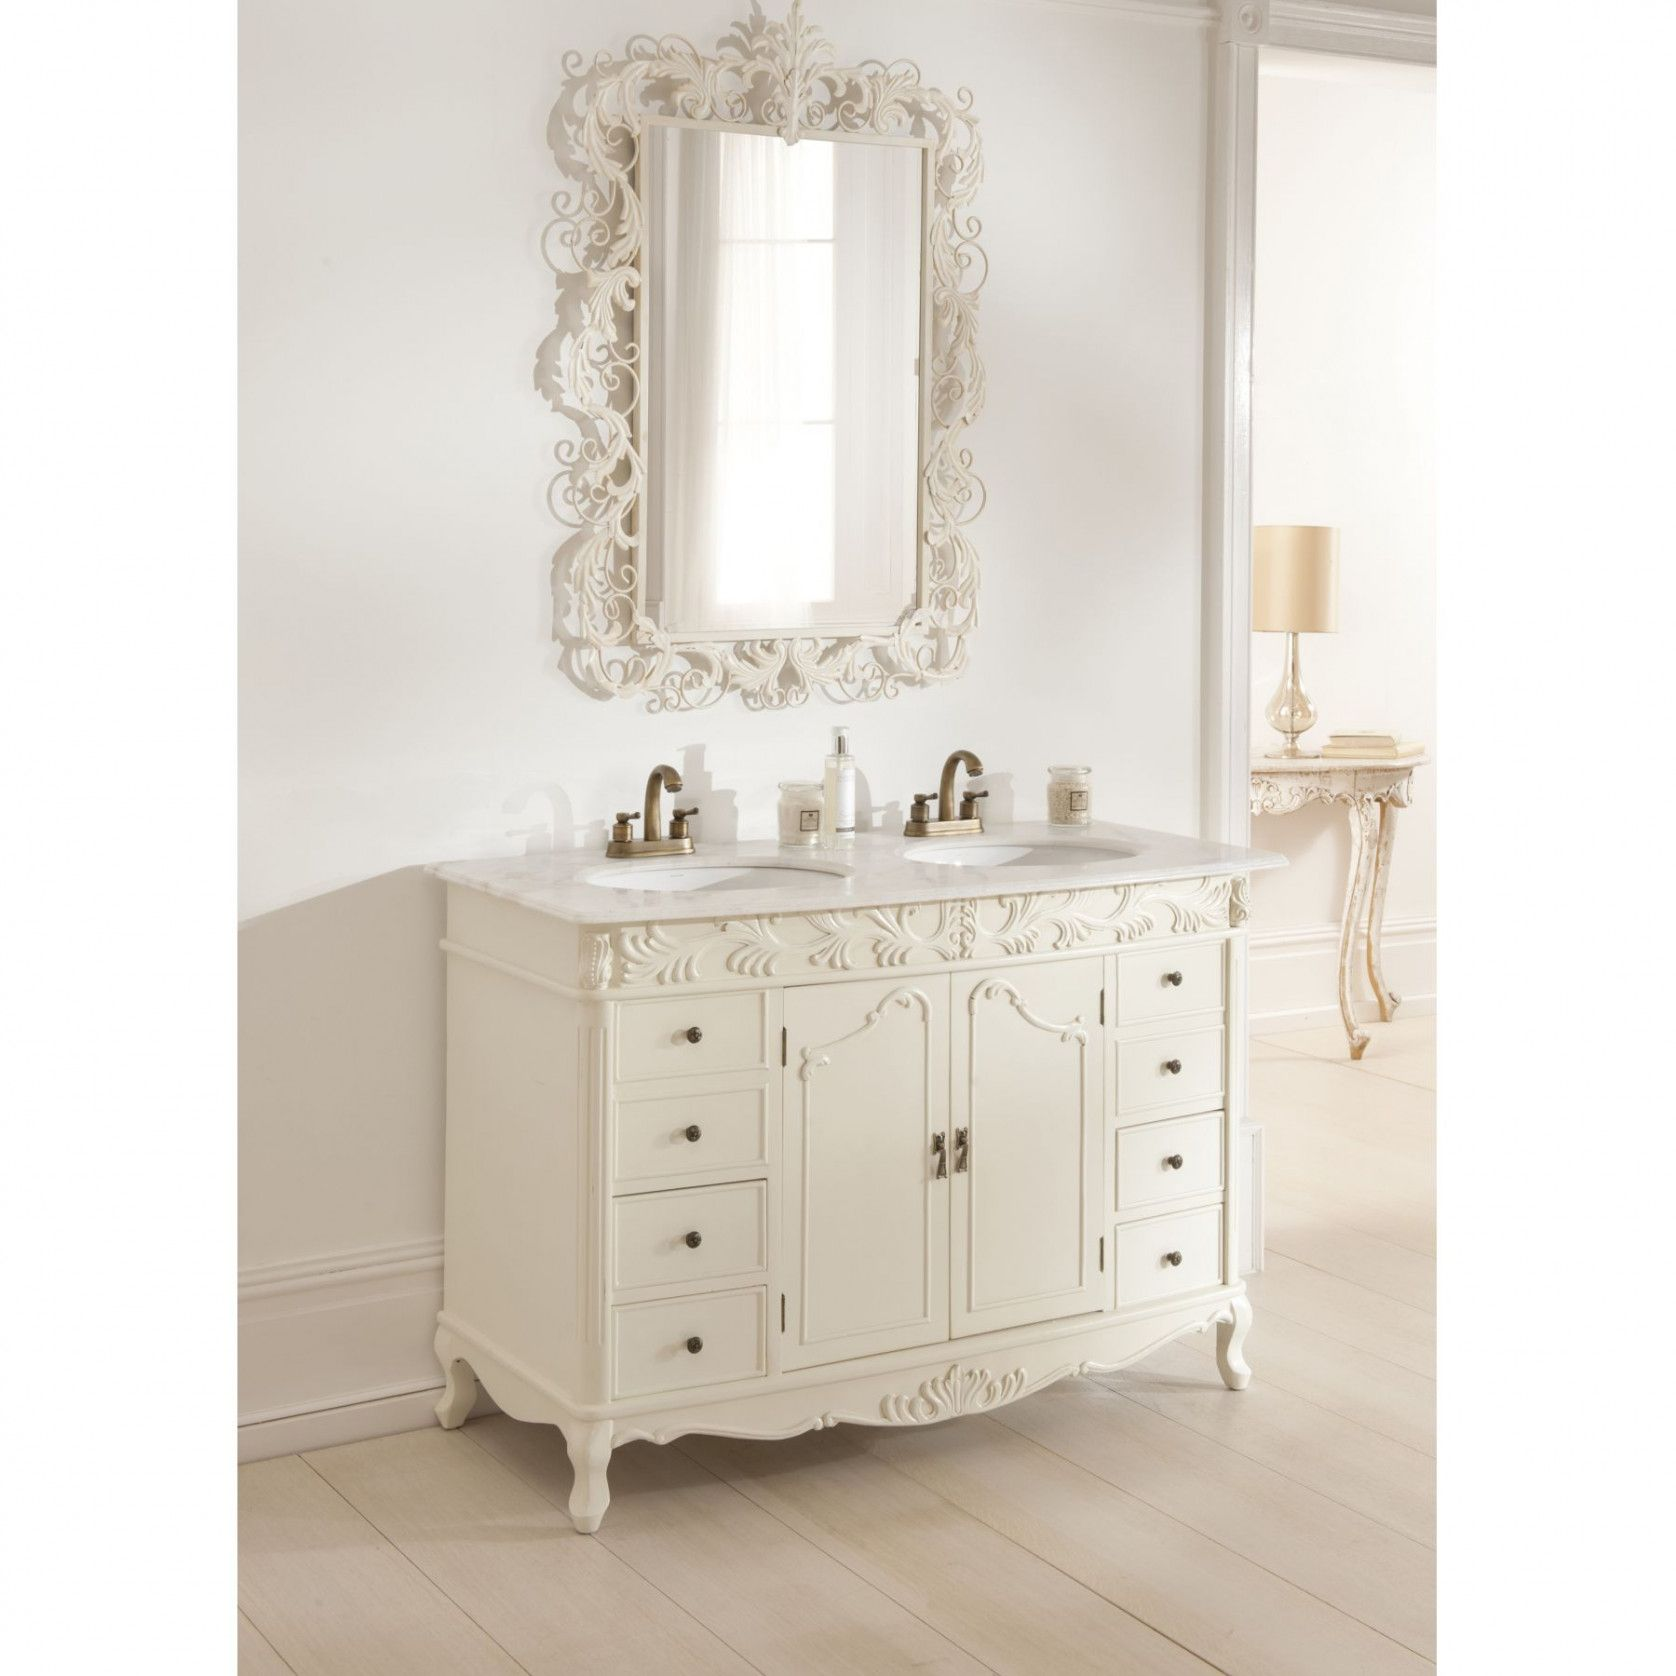 99+ Vintage Bathroom Vanity Sink Cabinets - Kitchen Cabinets ...